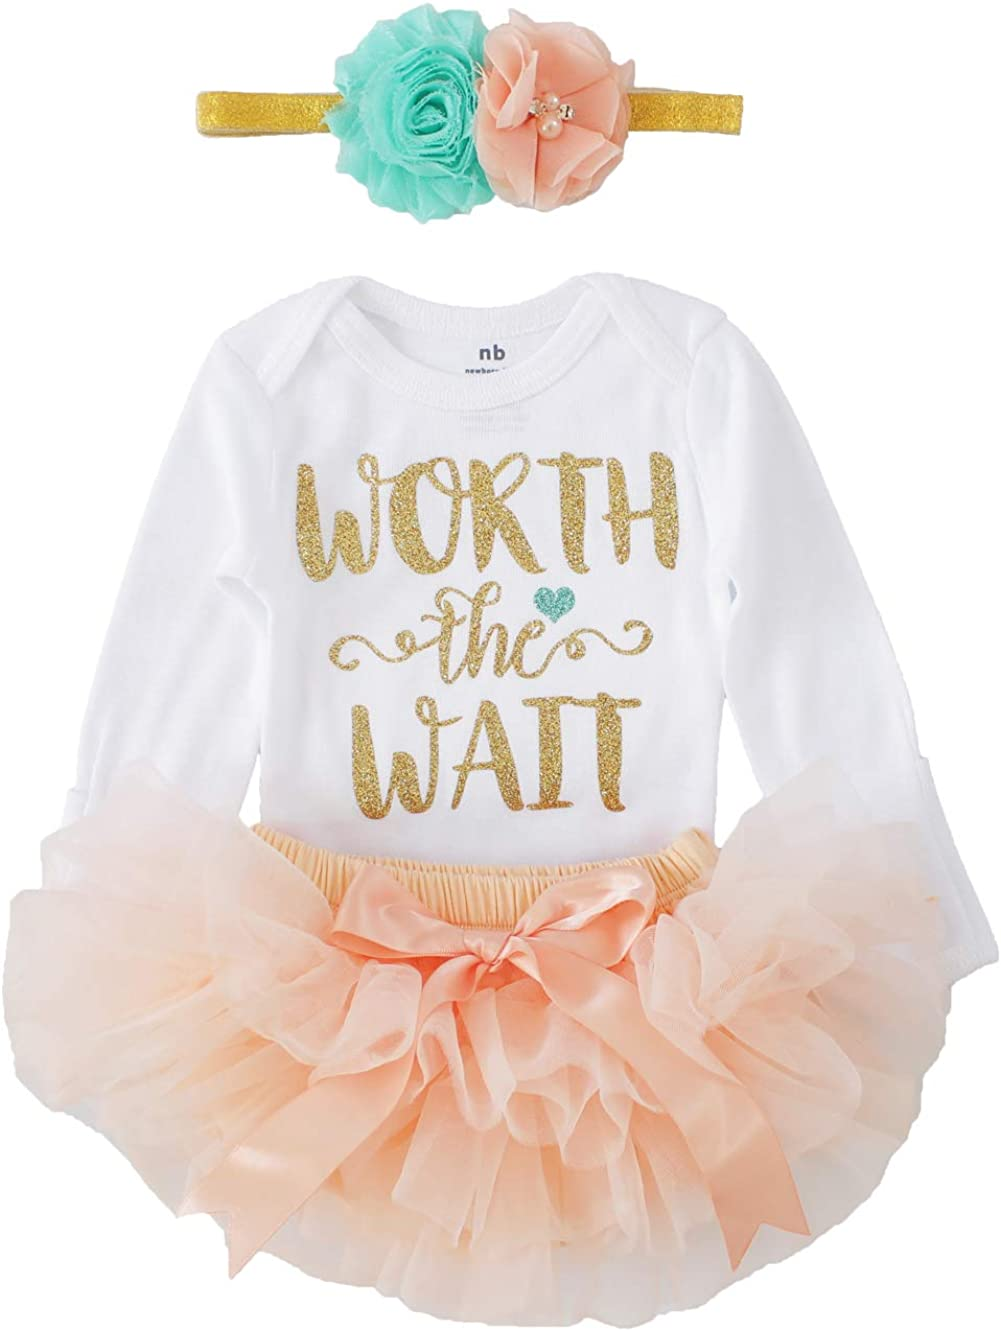 3pcs Mint and Peach Newborn Baby Girl Coming Home Outfit Worth The Wait Bodysuits